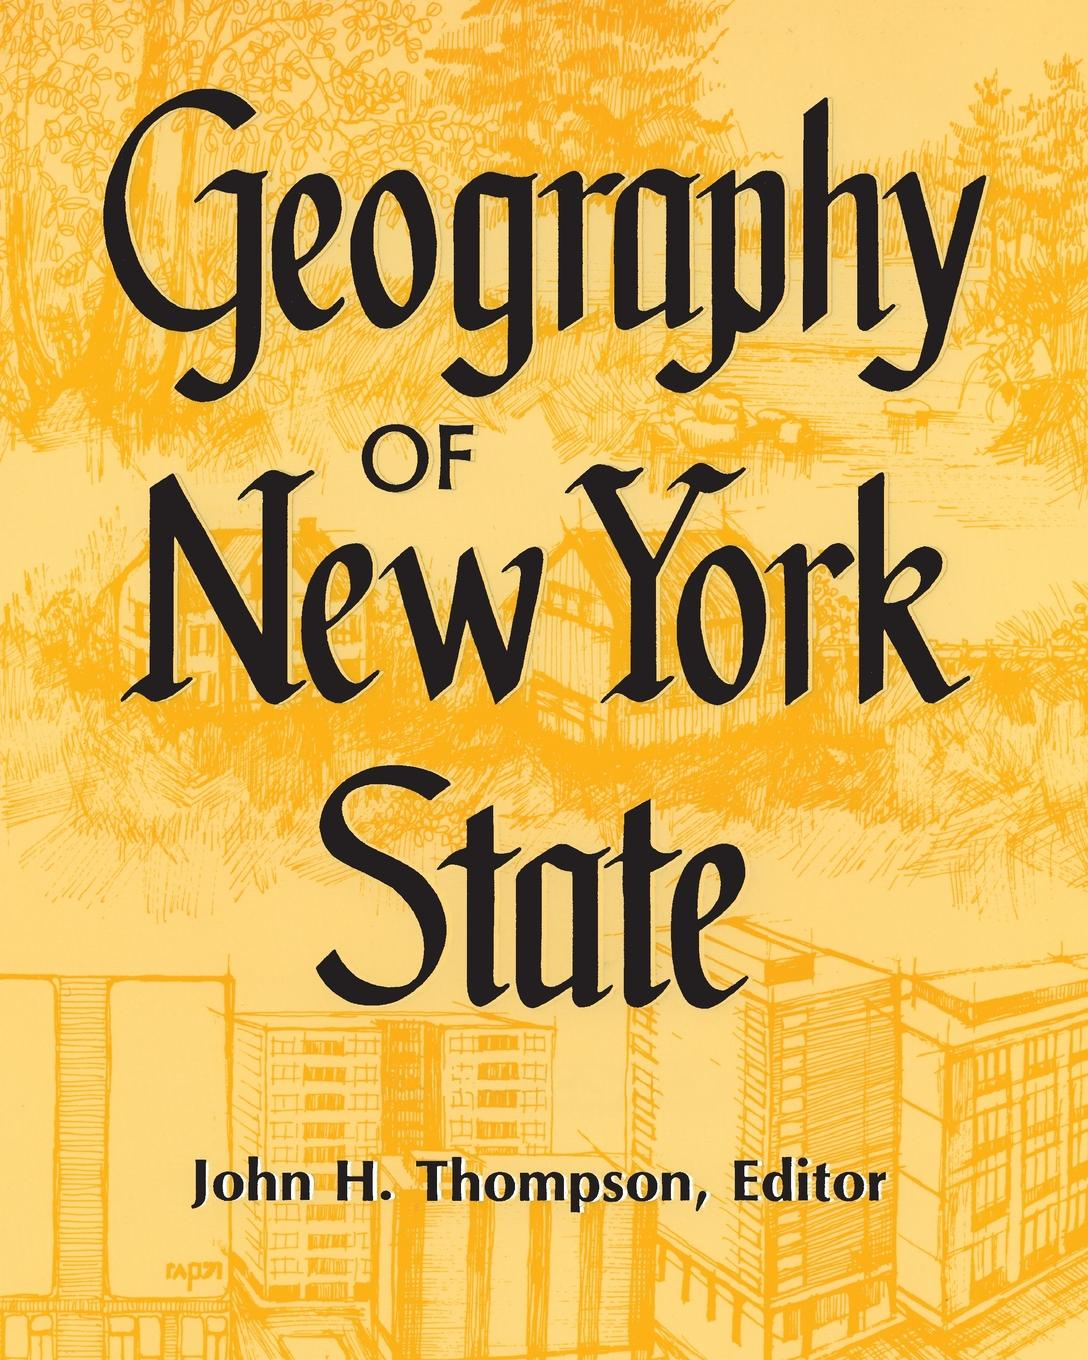 Geography of New York State